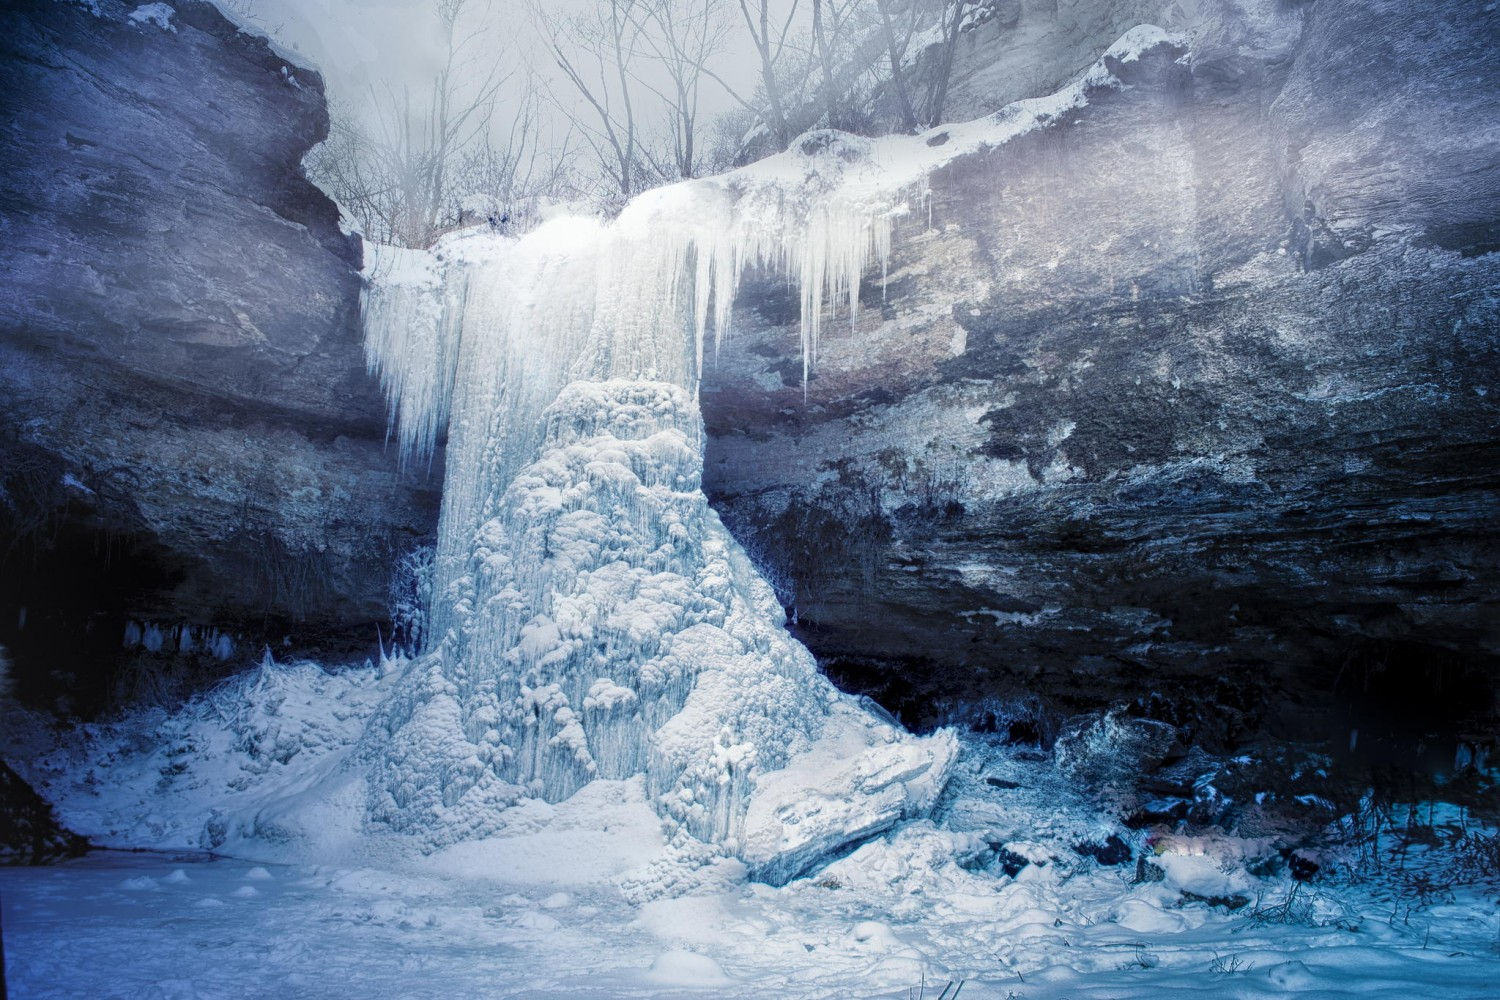 30 Fantastic Images Of Frozen Waterfalls Around The World